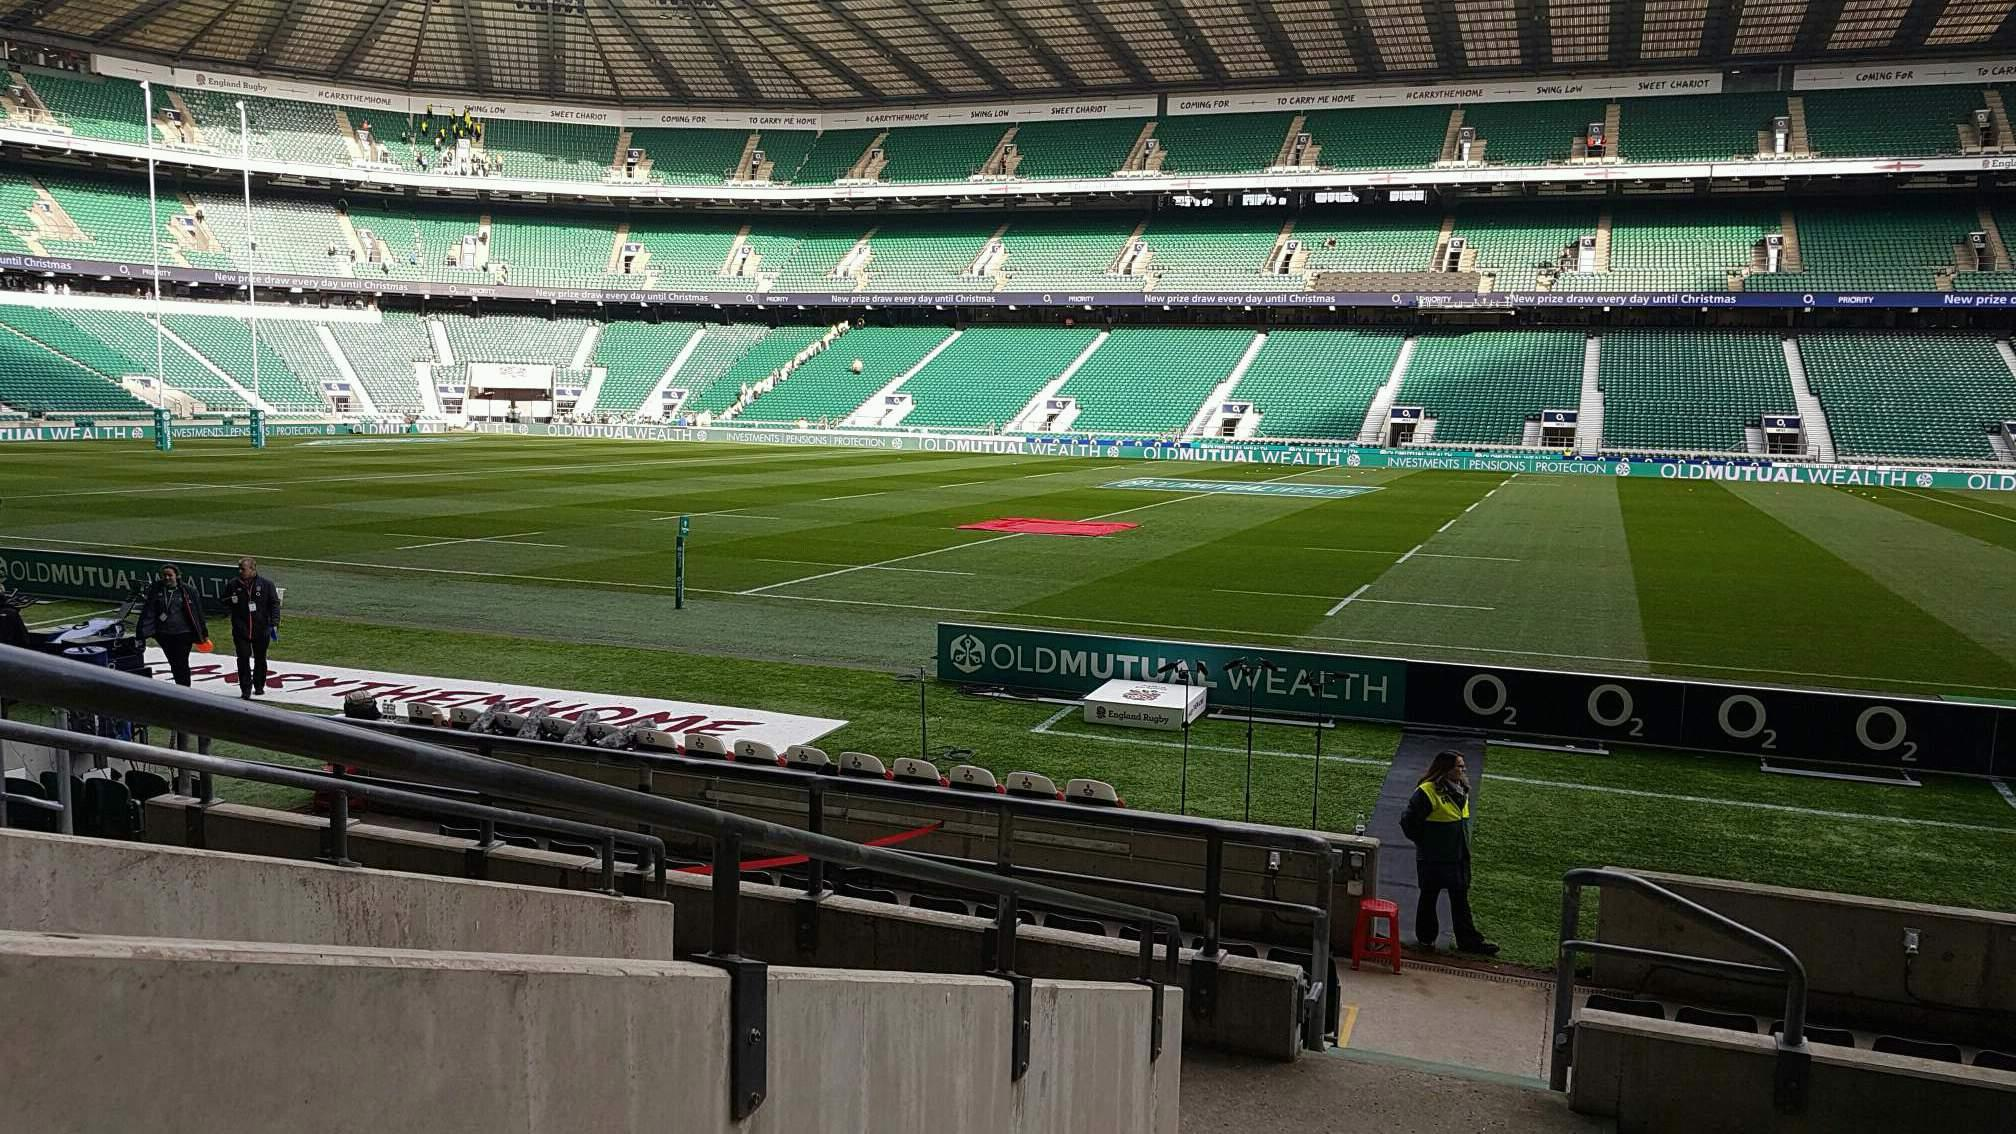 Twickenham Stadium Section L5 Row 14 Seat 222